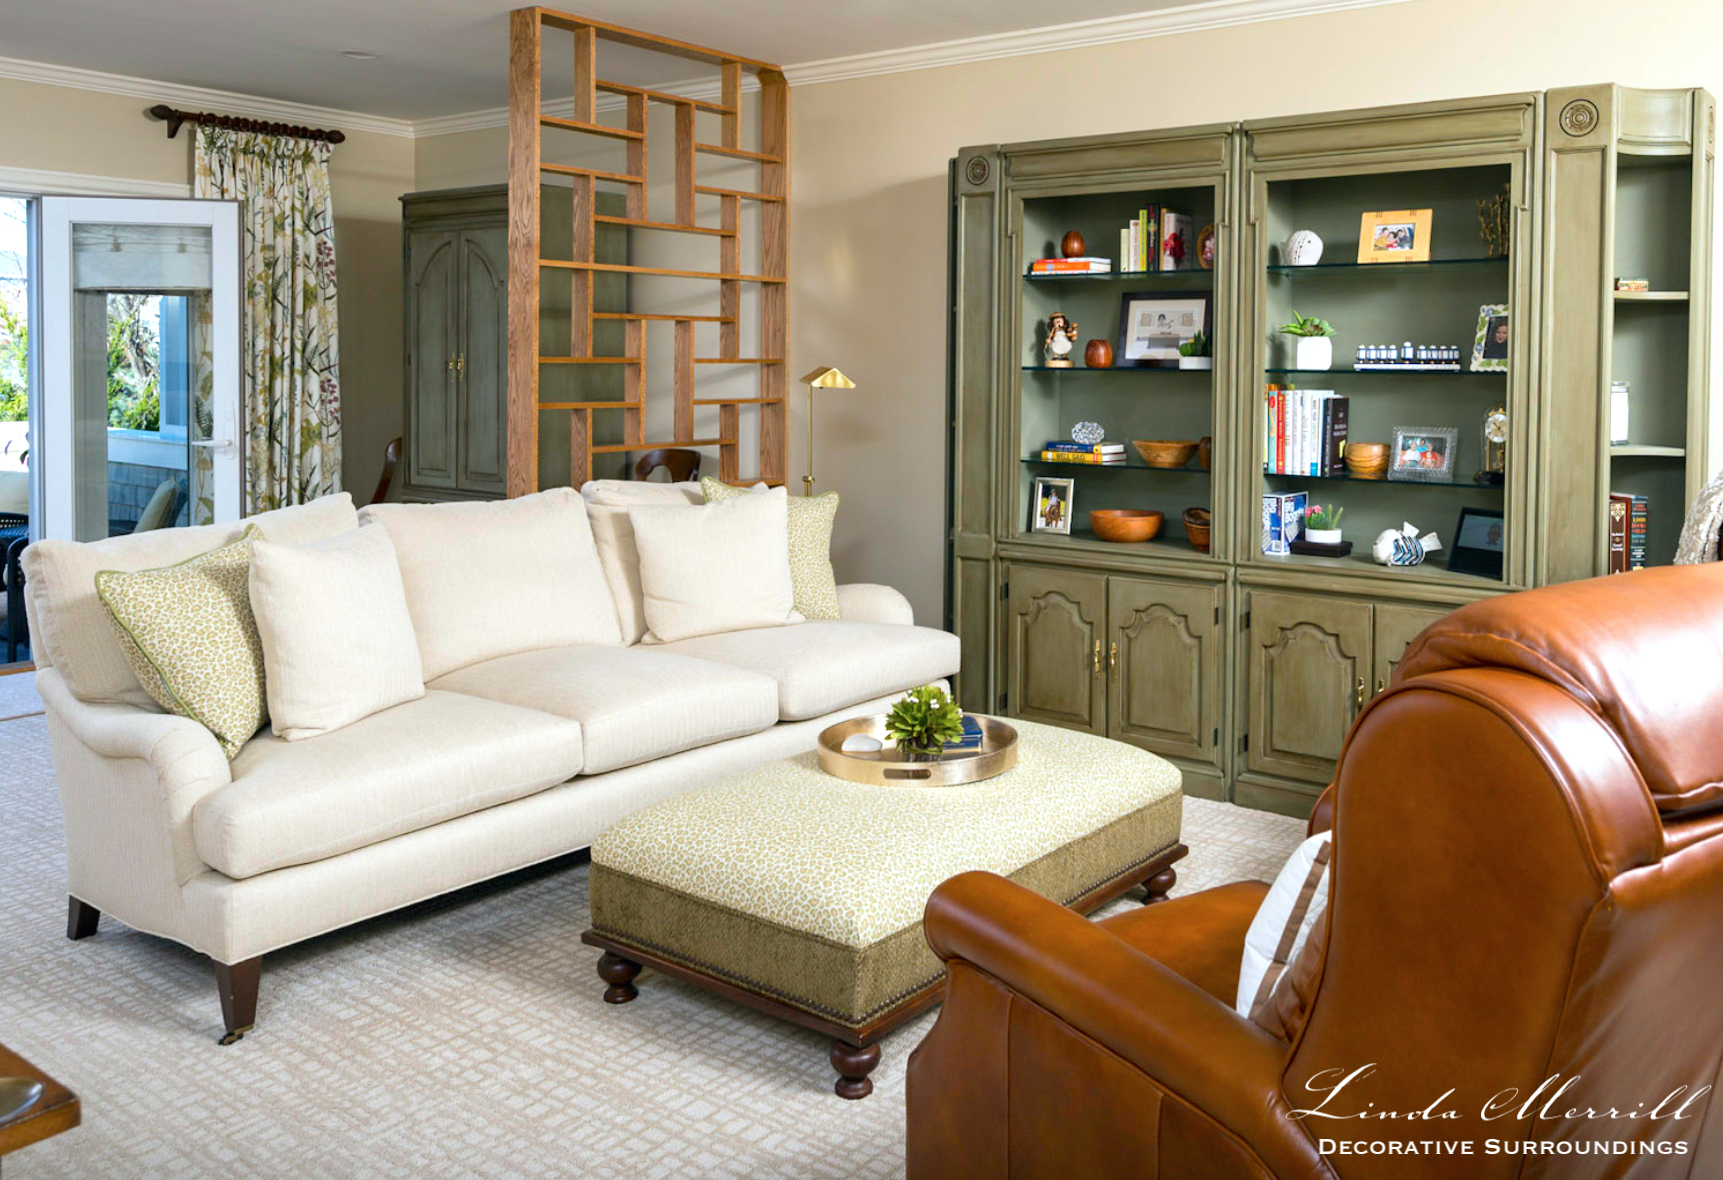 Linda Merrill Decorative Surroundings Hingham Sitting Room and Home Office Work From Home 2